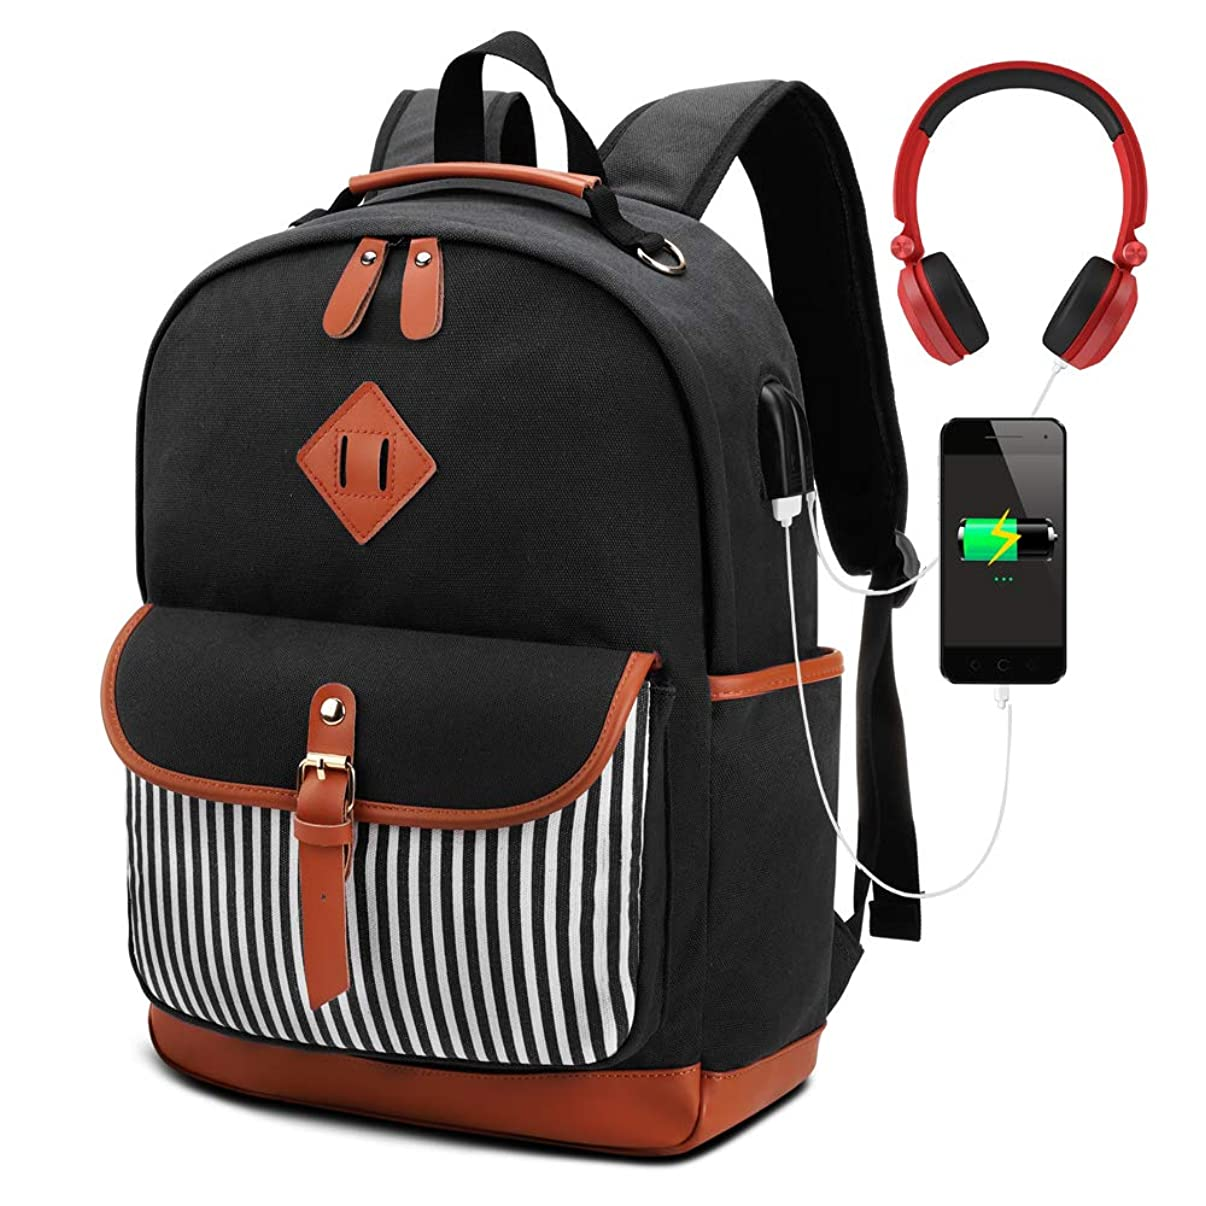 Meisohua Laptop Backpack Canvas Backpack Womens School Backpack with USB Charging Port College Backpack Teen Girls High School Bookbag fit 15.6 inch Laptop (Black)